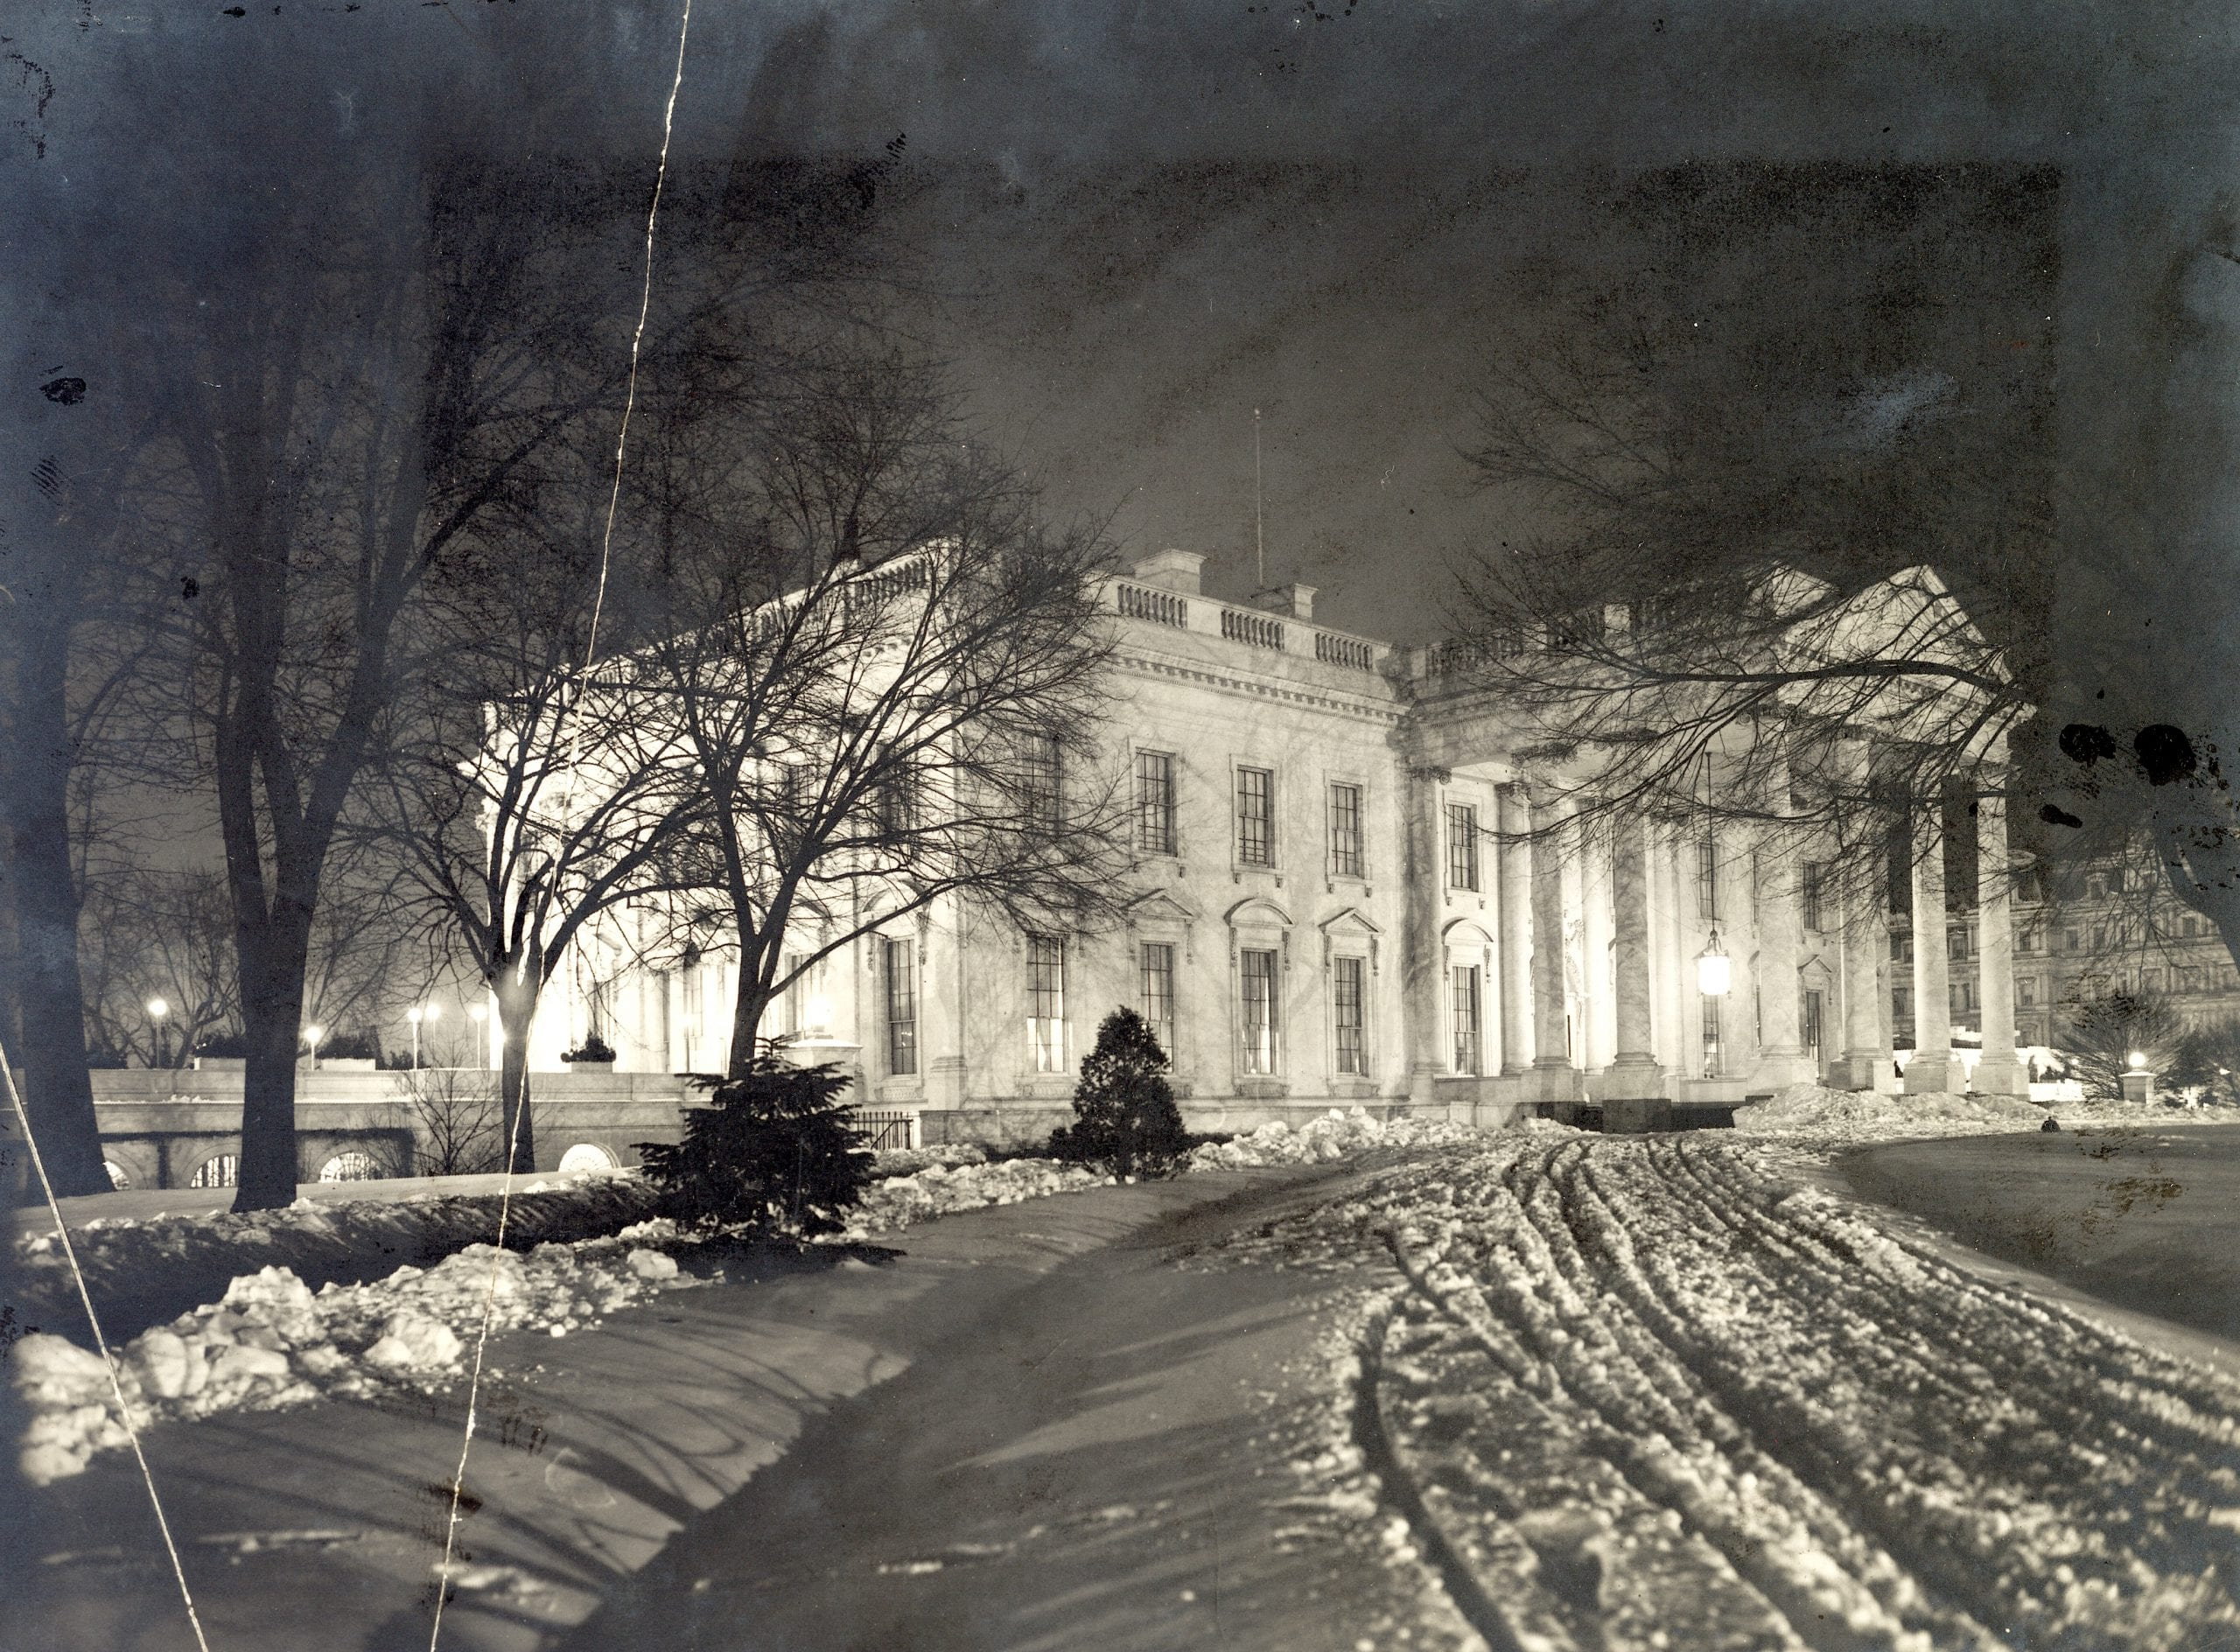 White House on a Snowy Night in 1907